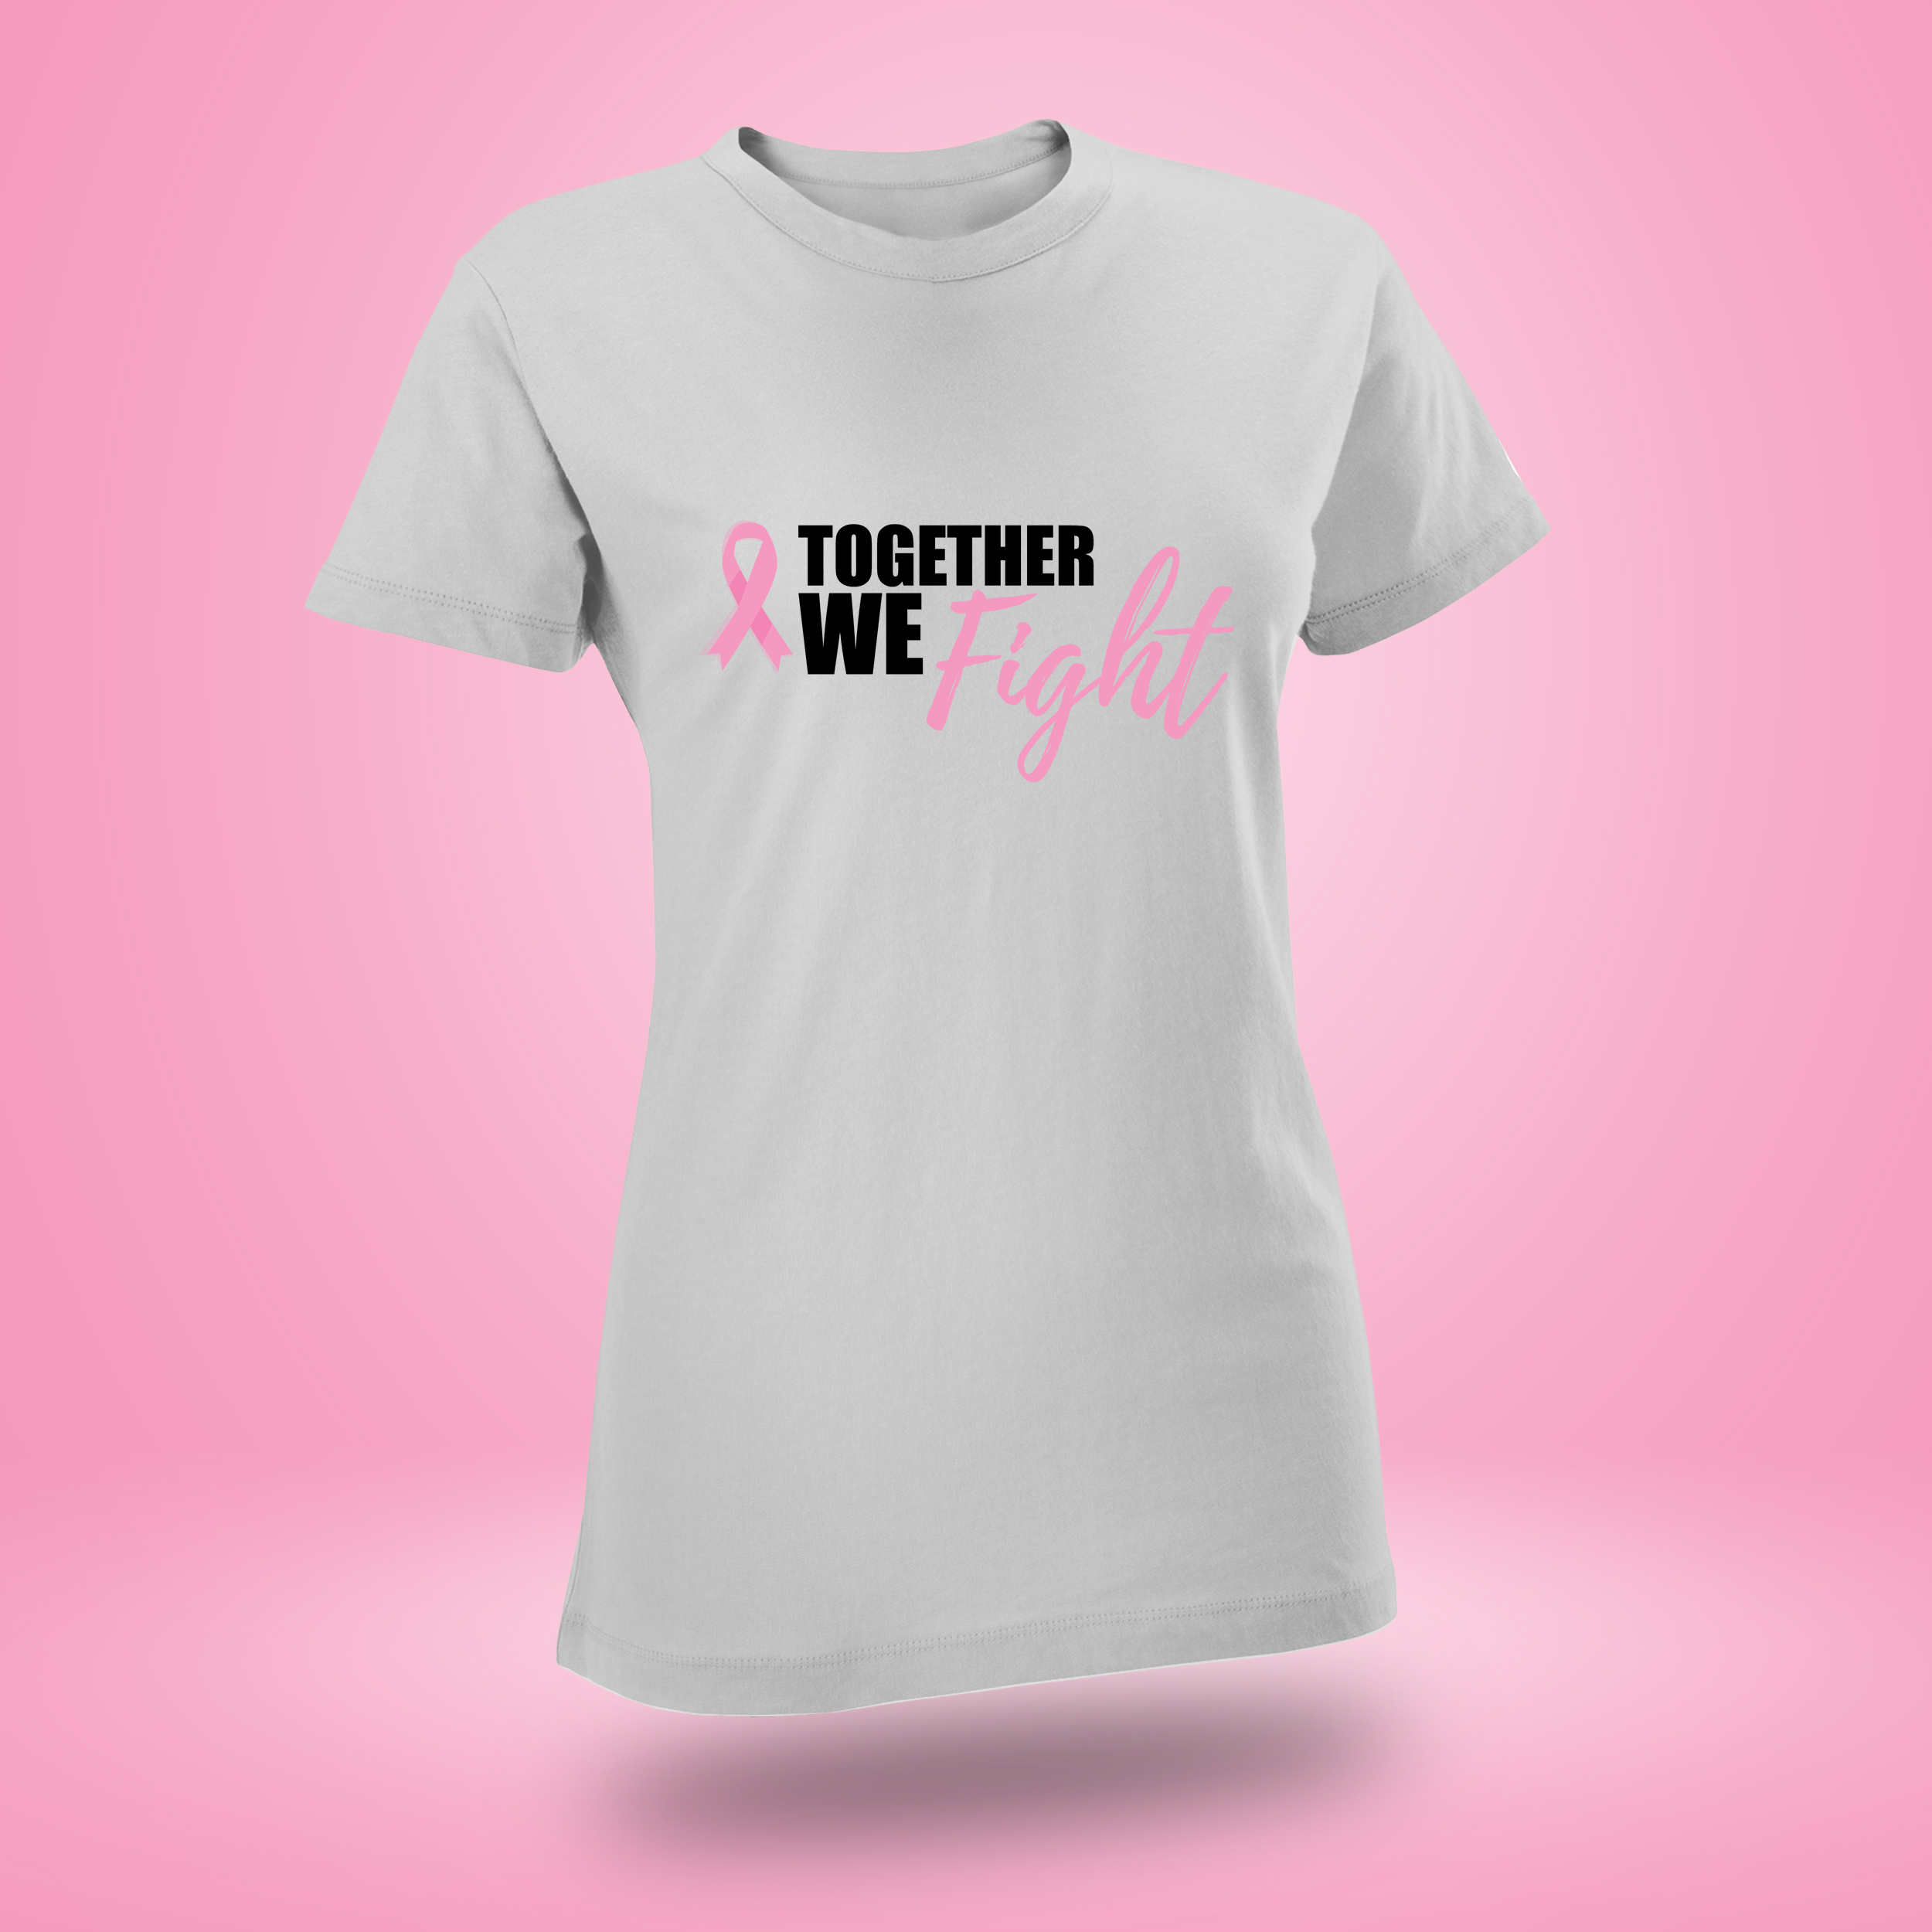 Together We Fight - White  Starting at $15.00